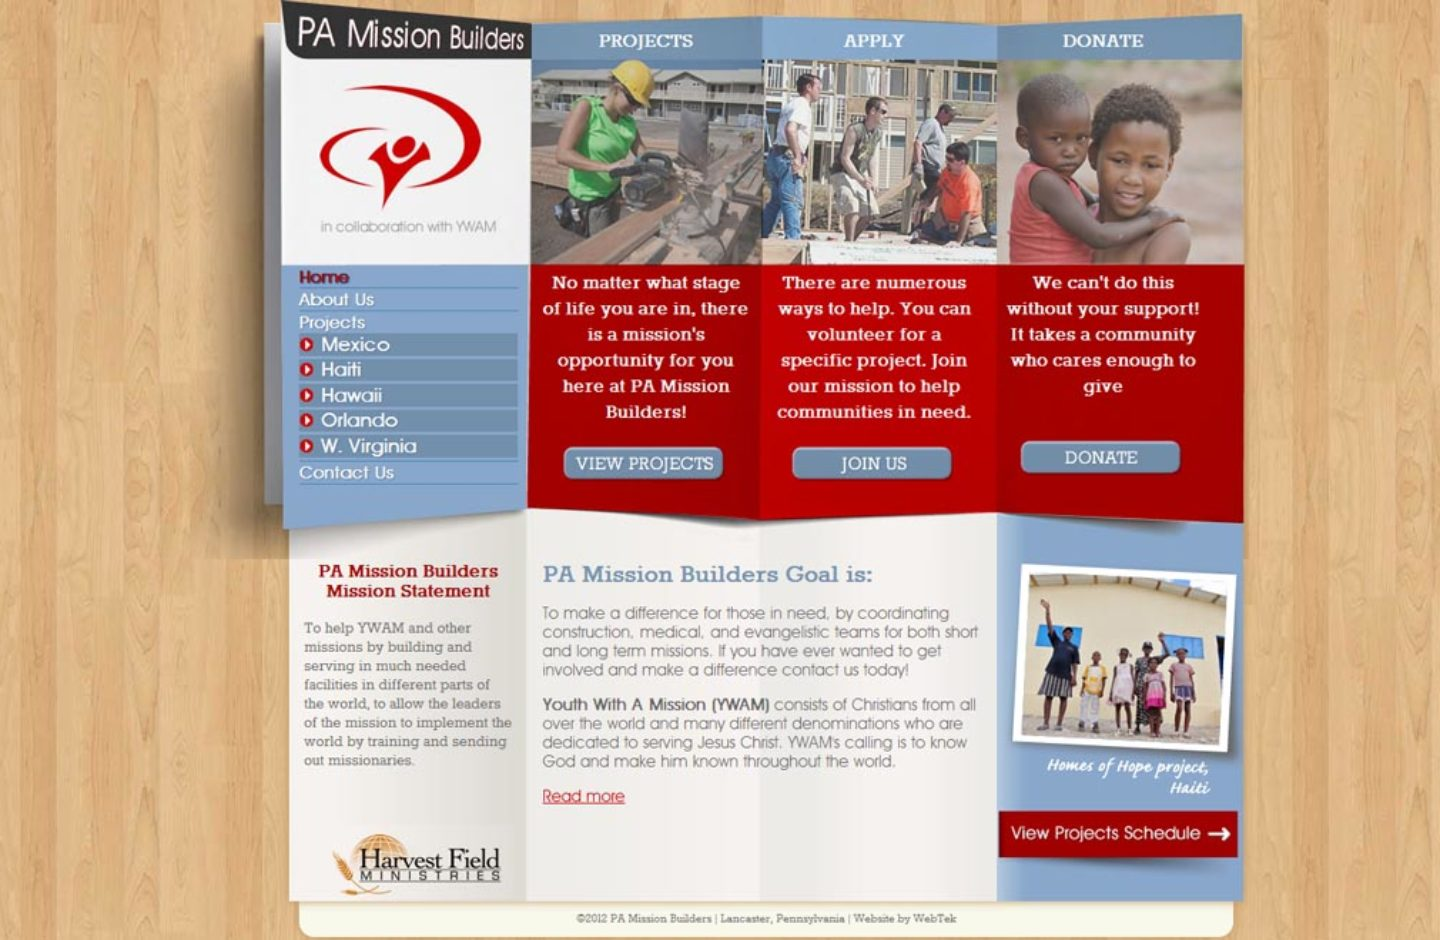 PA Mission Builders